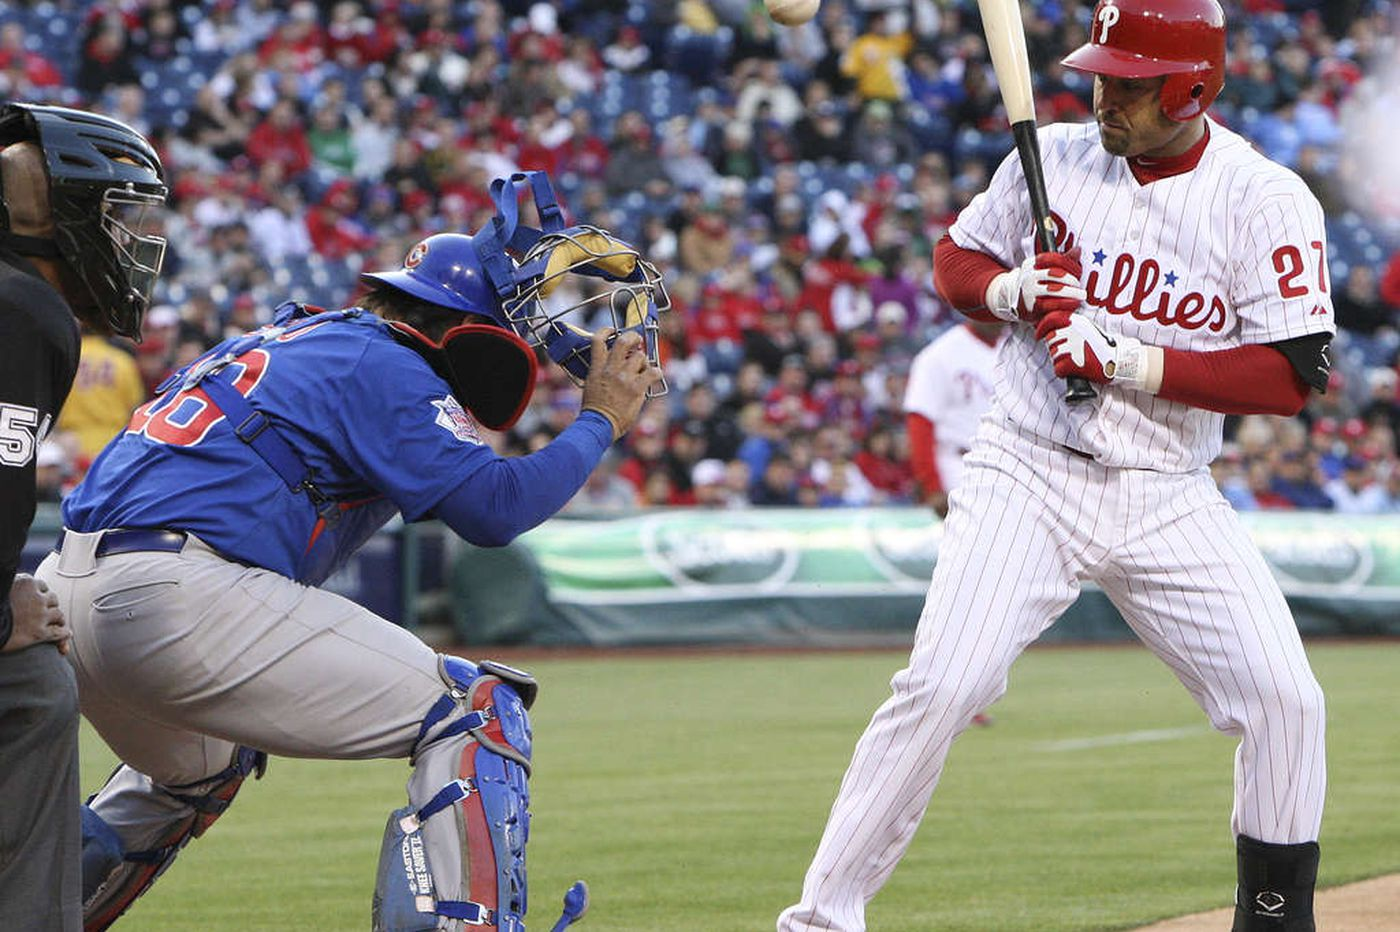 Halladay, Phillies fall to Cubs, 5-1